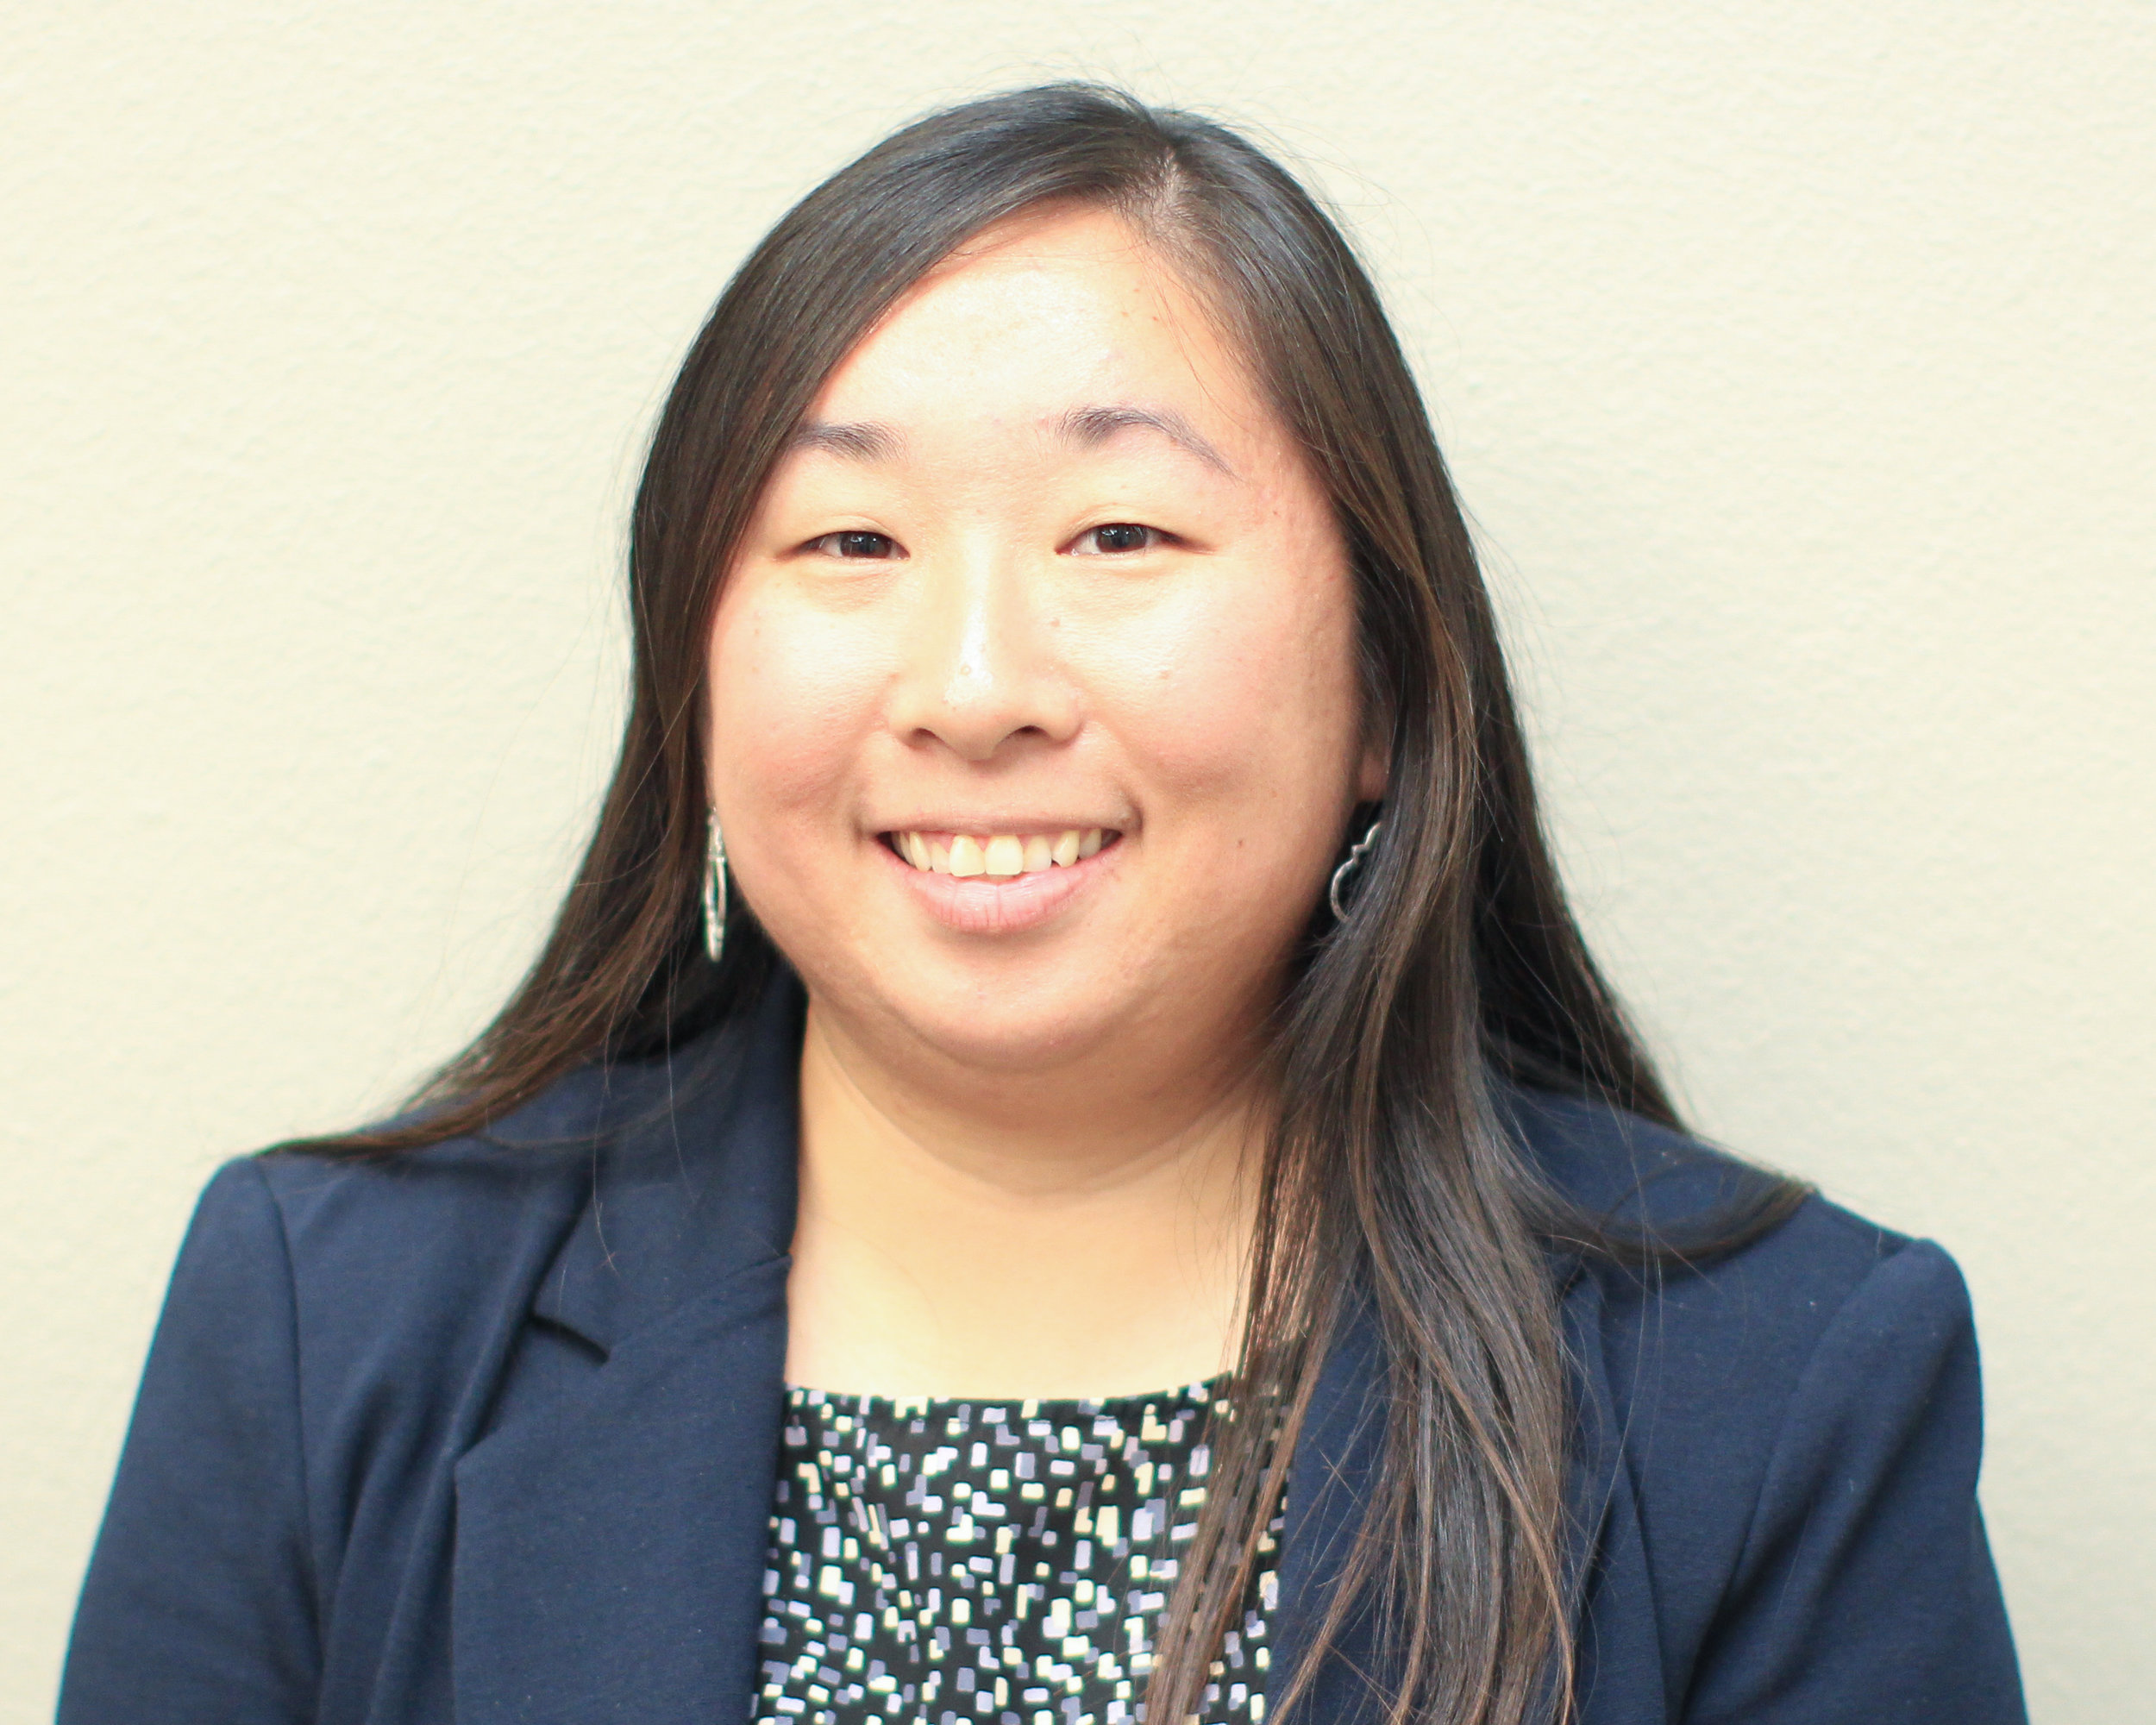 Shelly Wu, Doctoral Candidate, Texas Christian University